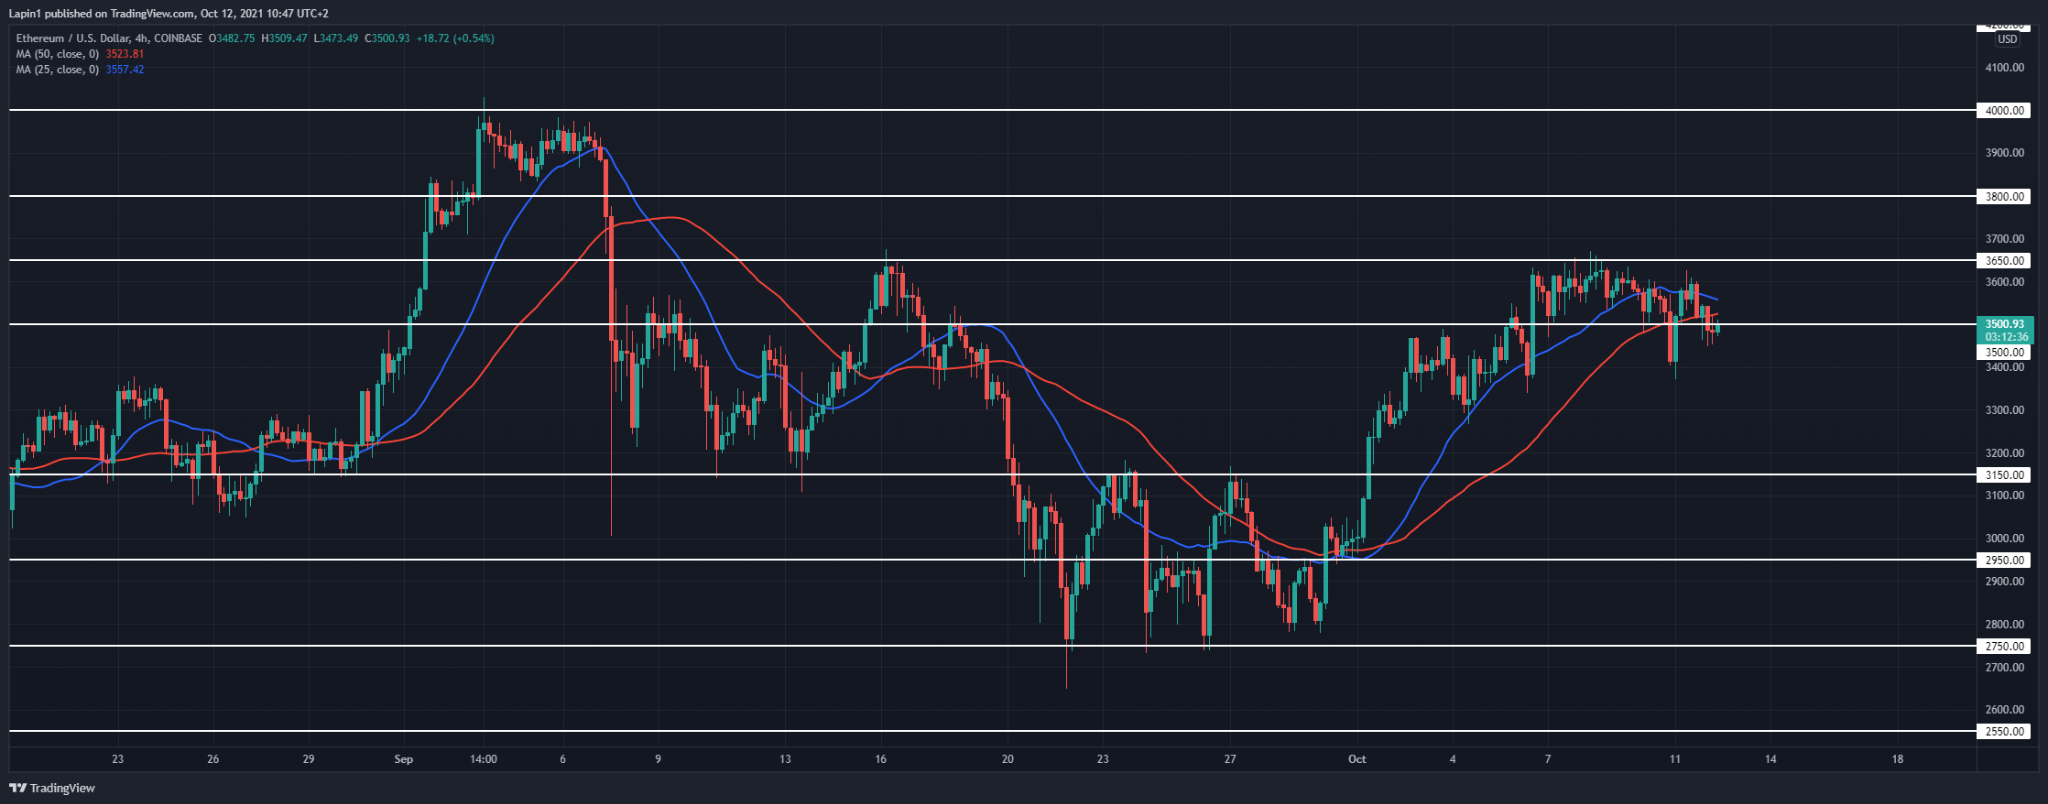 Ethereum Price Analysis: ETH falls below $3,500 again, further downside to follow?